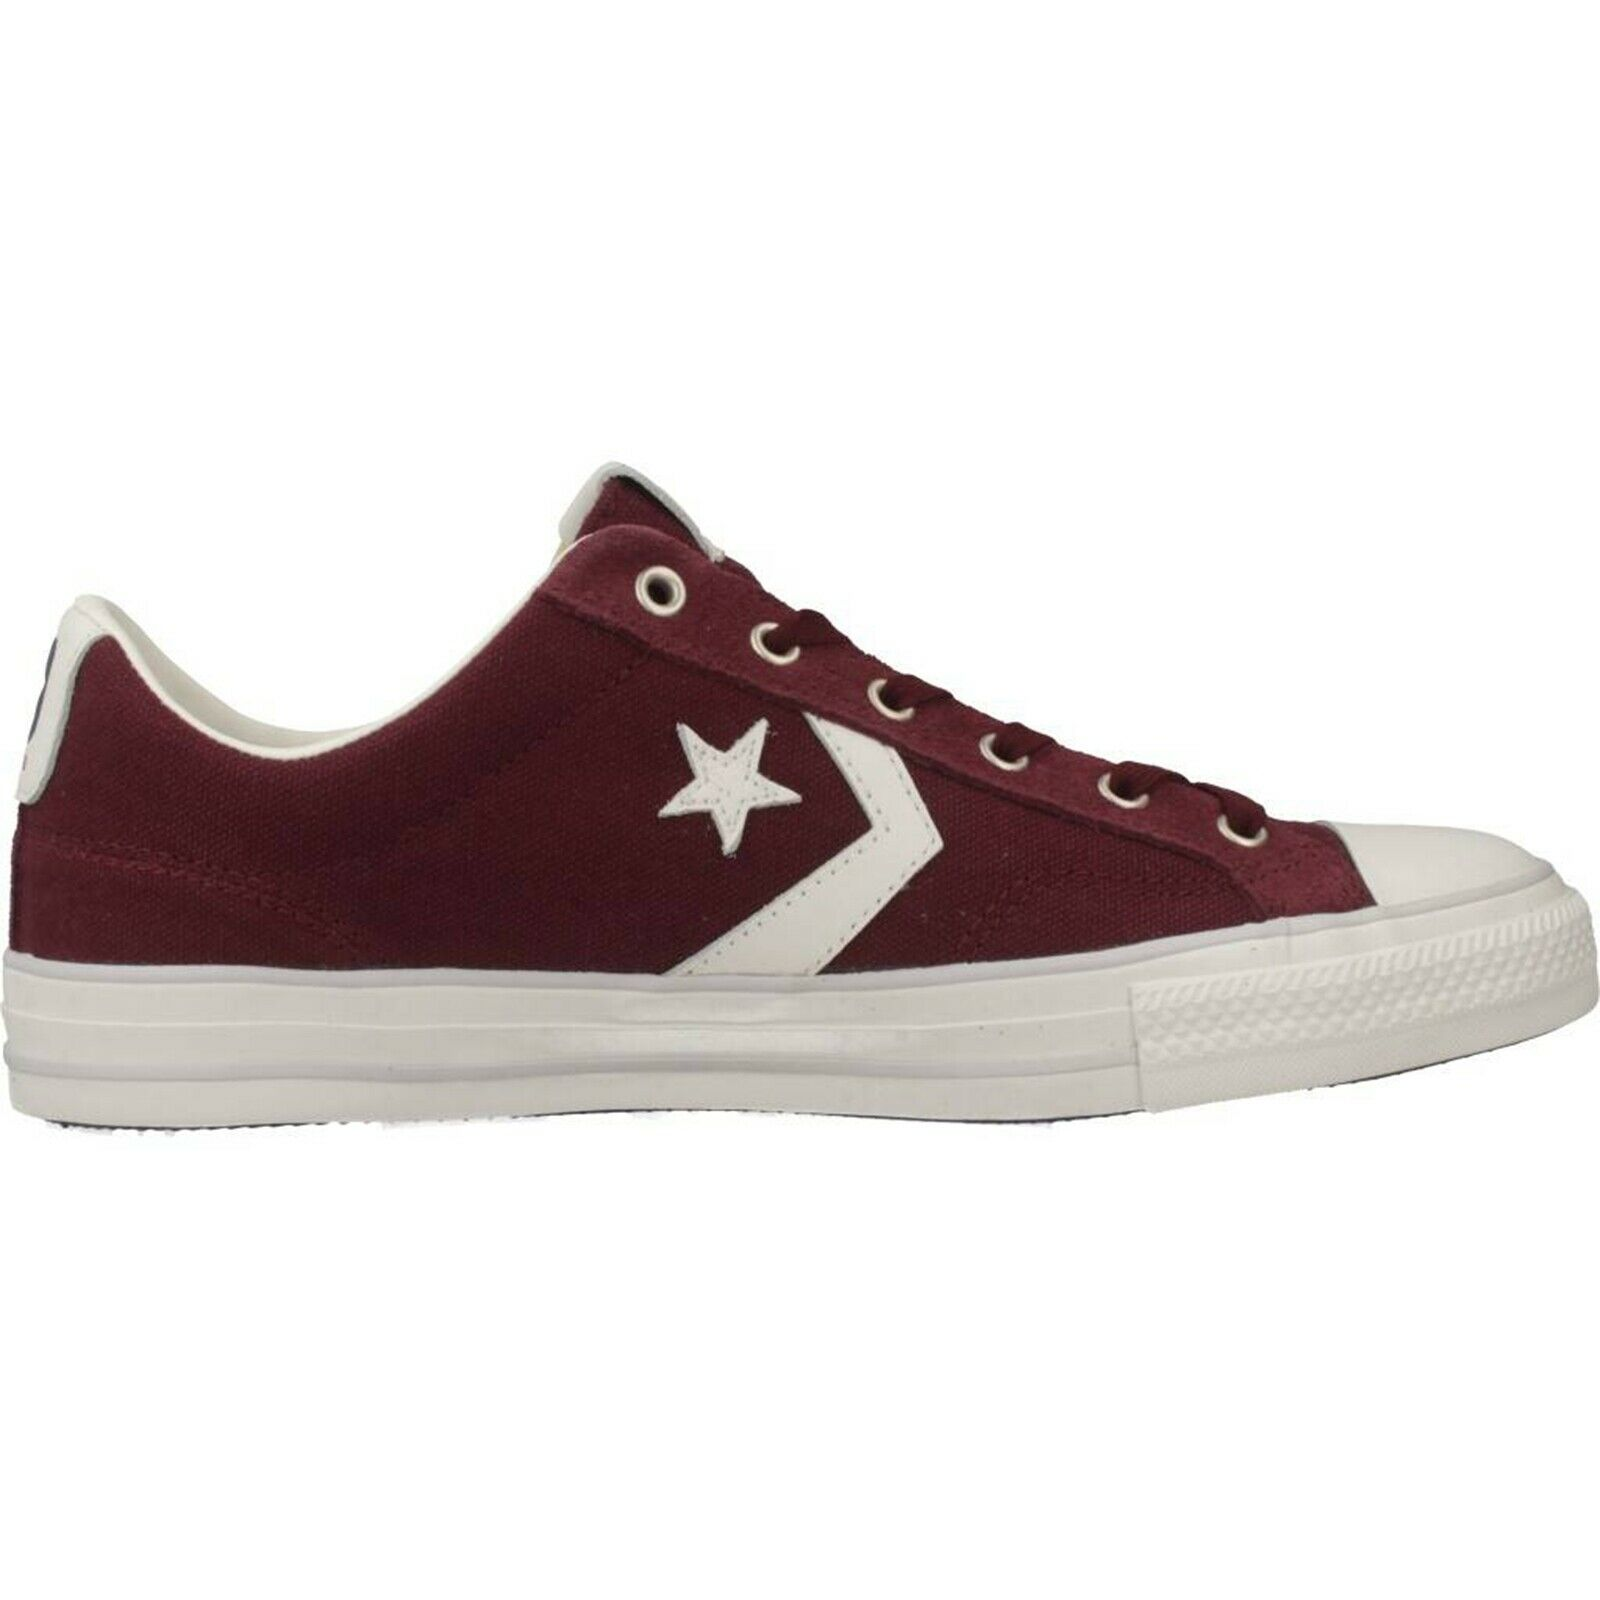 baskets CONVERSE Star Player Ox chaussures Basse hommes 163960C BORDEAUX